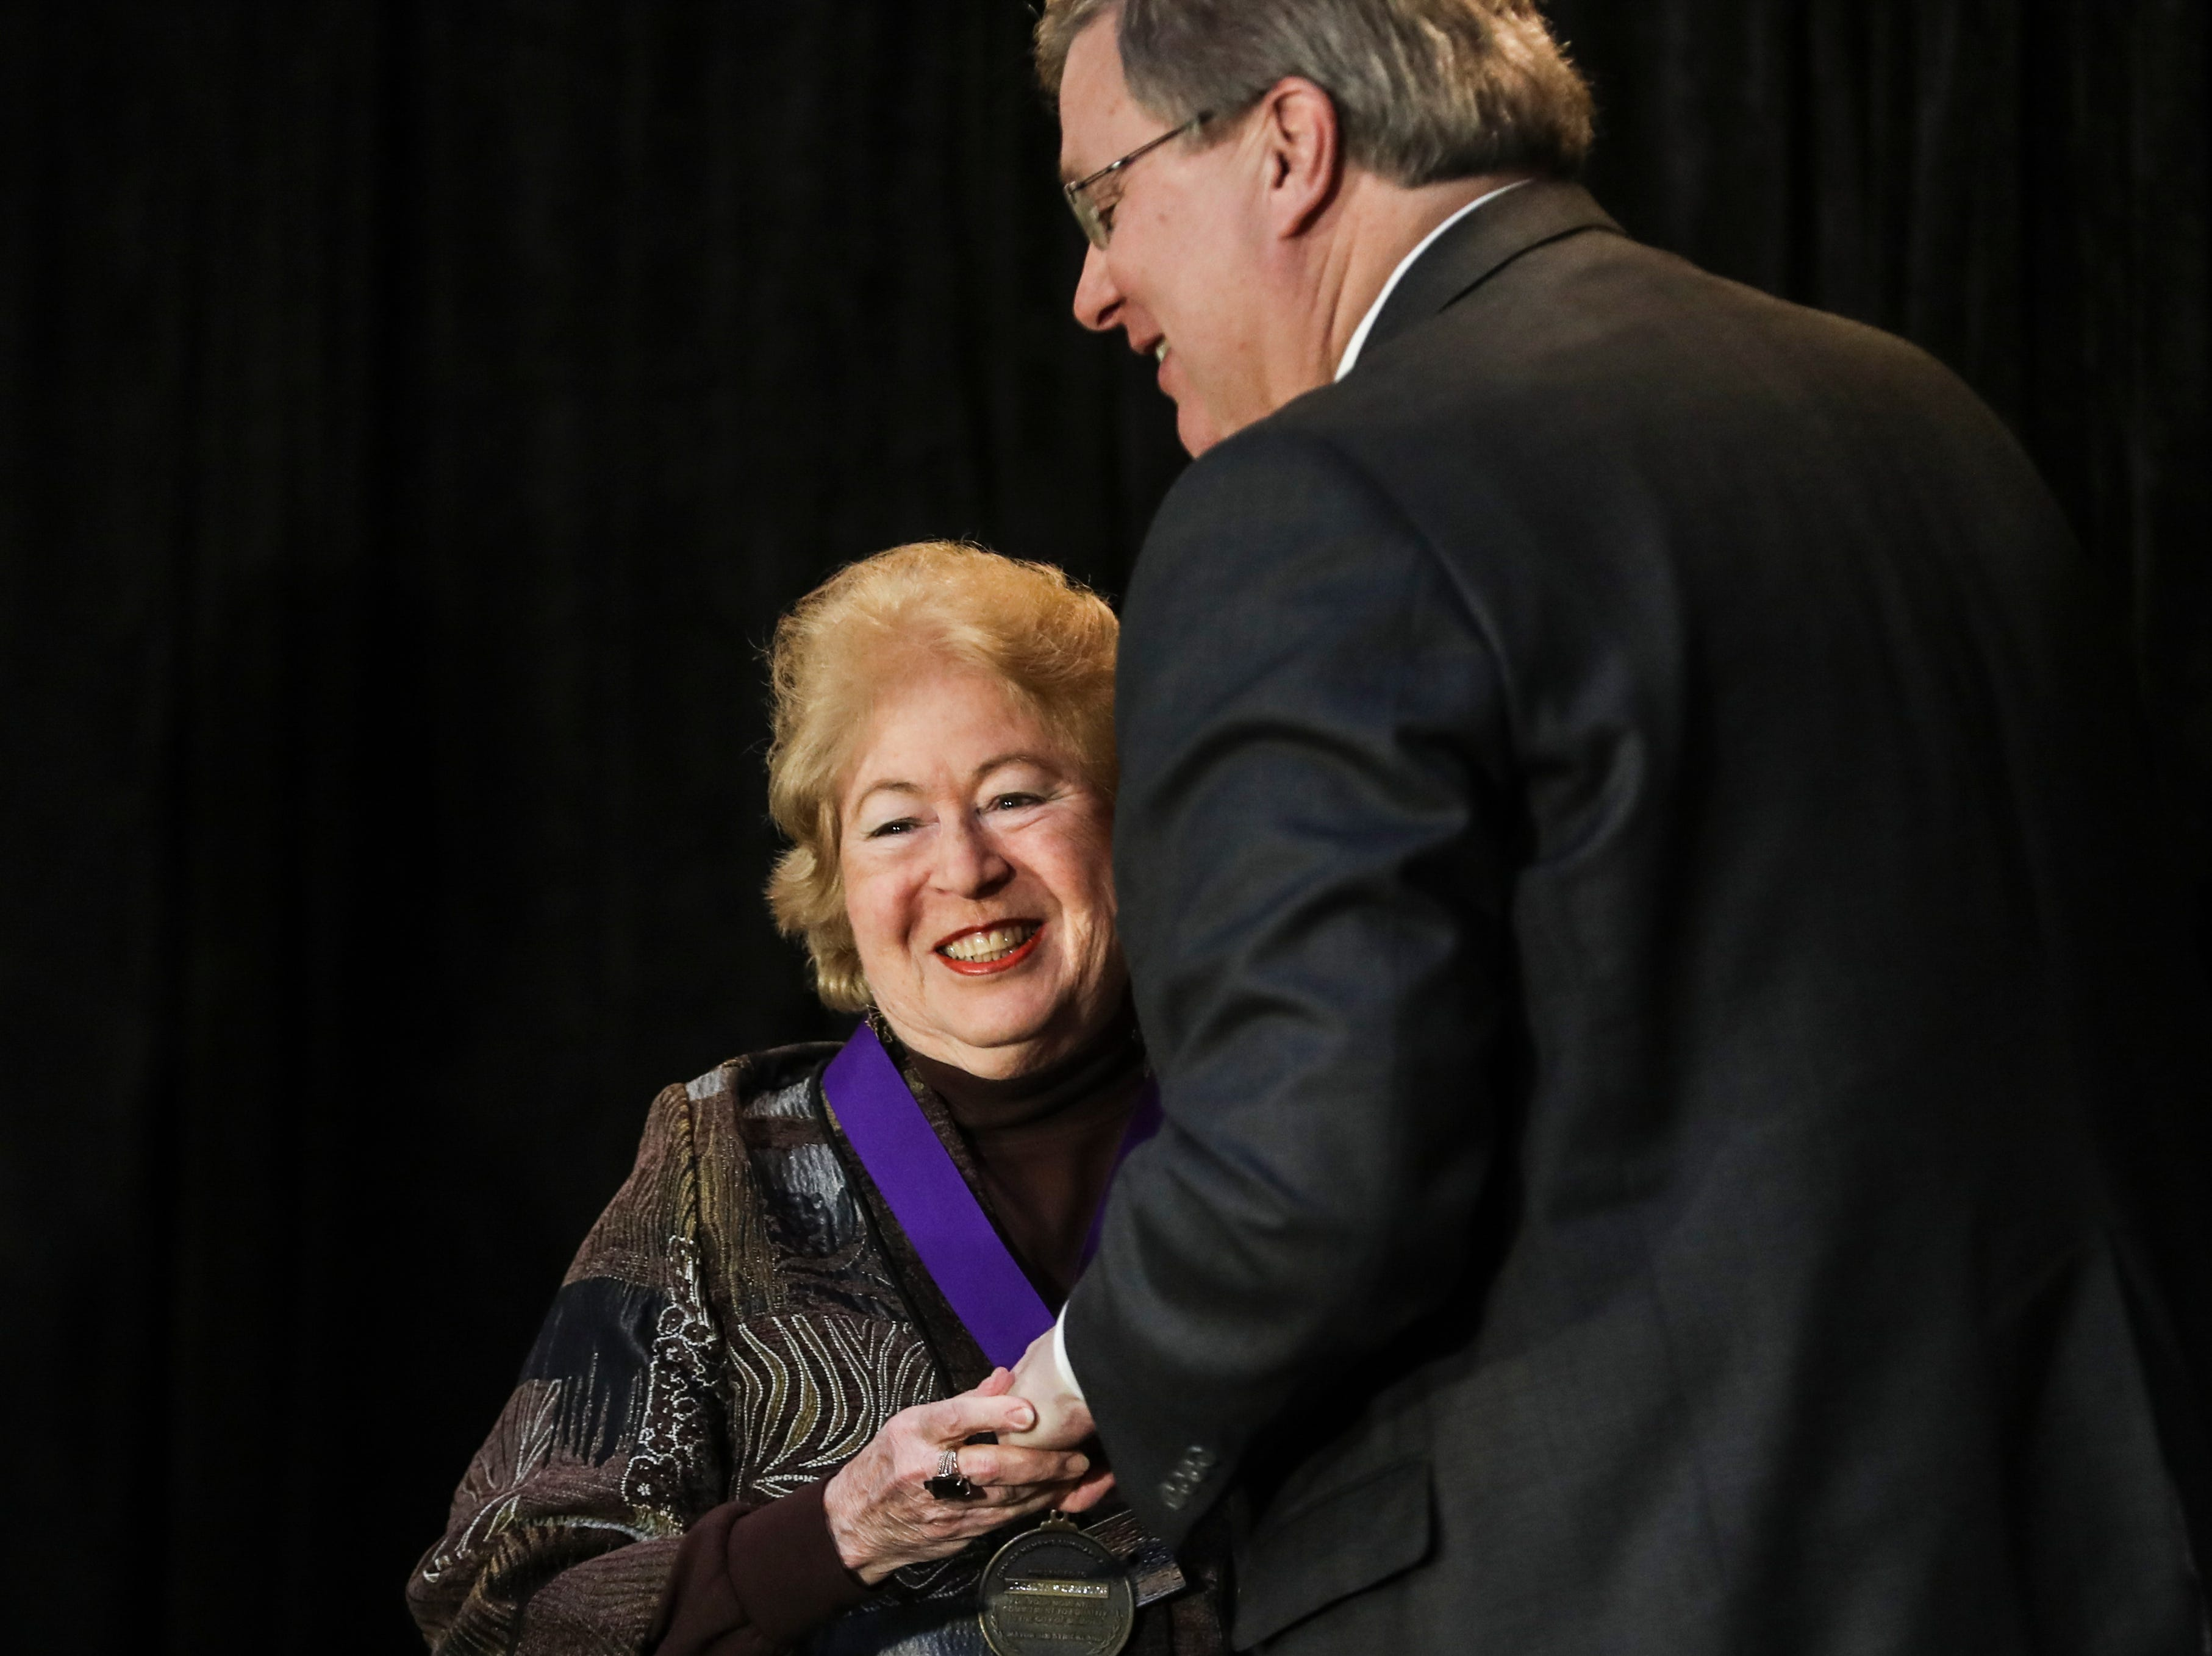 January 21 2019 - Jocelyn Dan Wurzburg embraces Memphis Mayor Jim Strickland after receiving her award during the 2019 MLK Luminary Awards at the Hall of Mayors in City Hall.